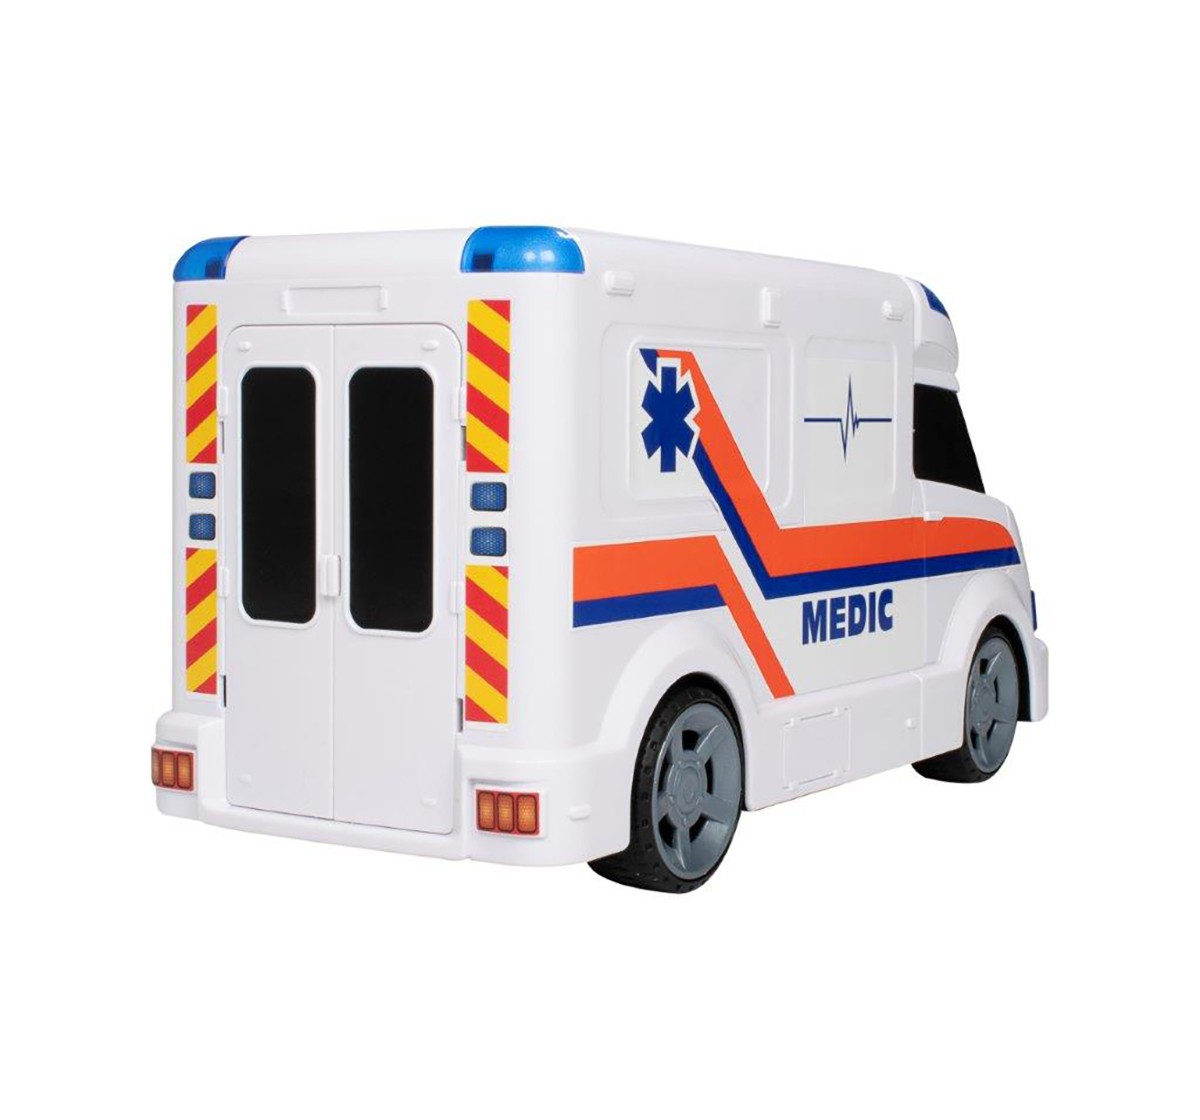 Ralleyz Light And Sound Ambulance Large Vehicles for Kids age 3Y+